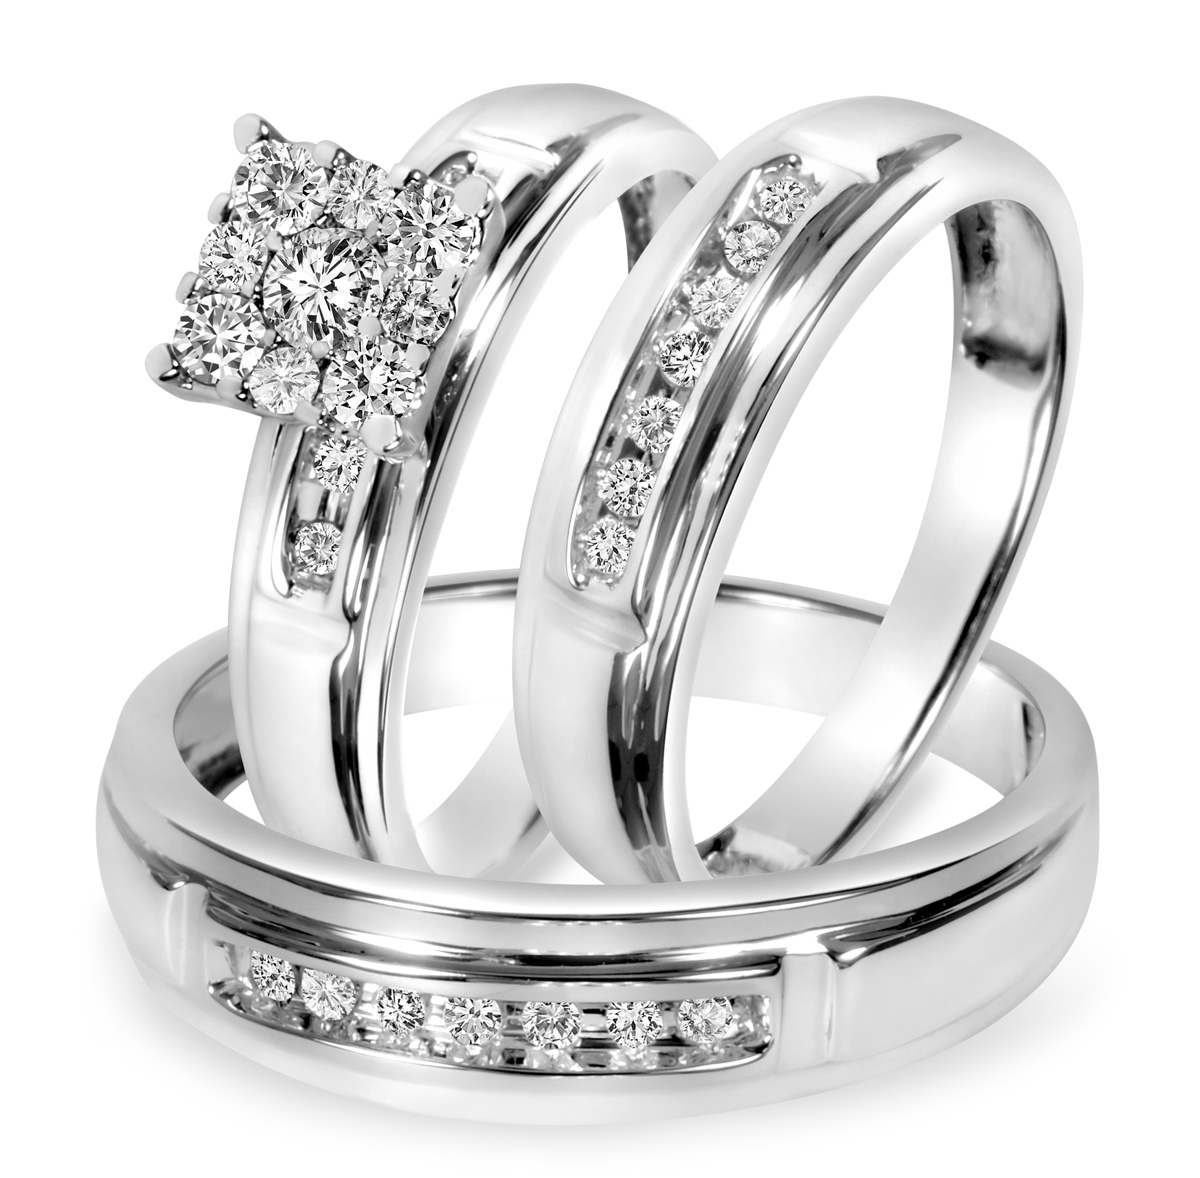 tw diamond trio matching wedding ring set 10k white gold my trio rings bt518w10k - Wedding Ring Trio Sets